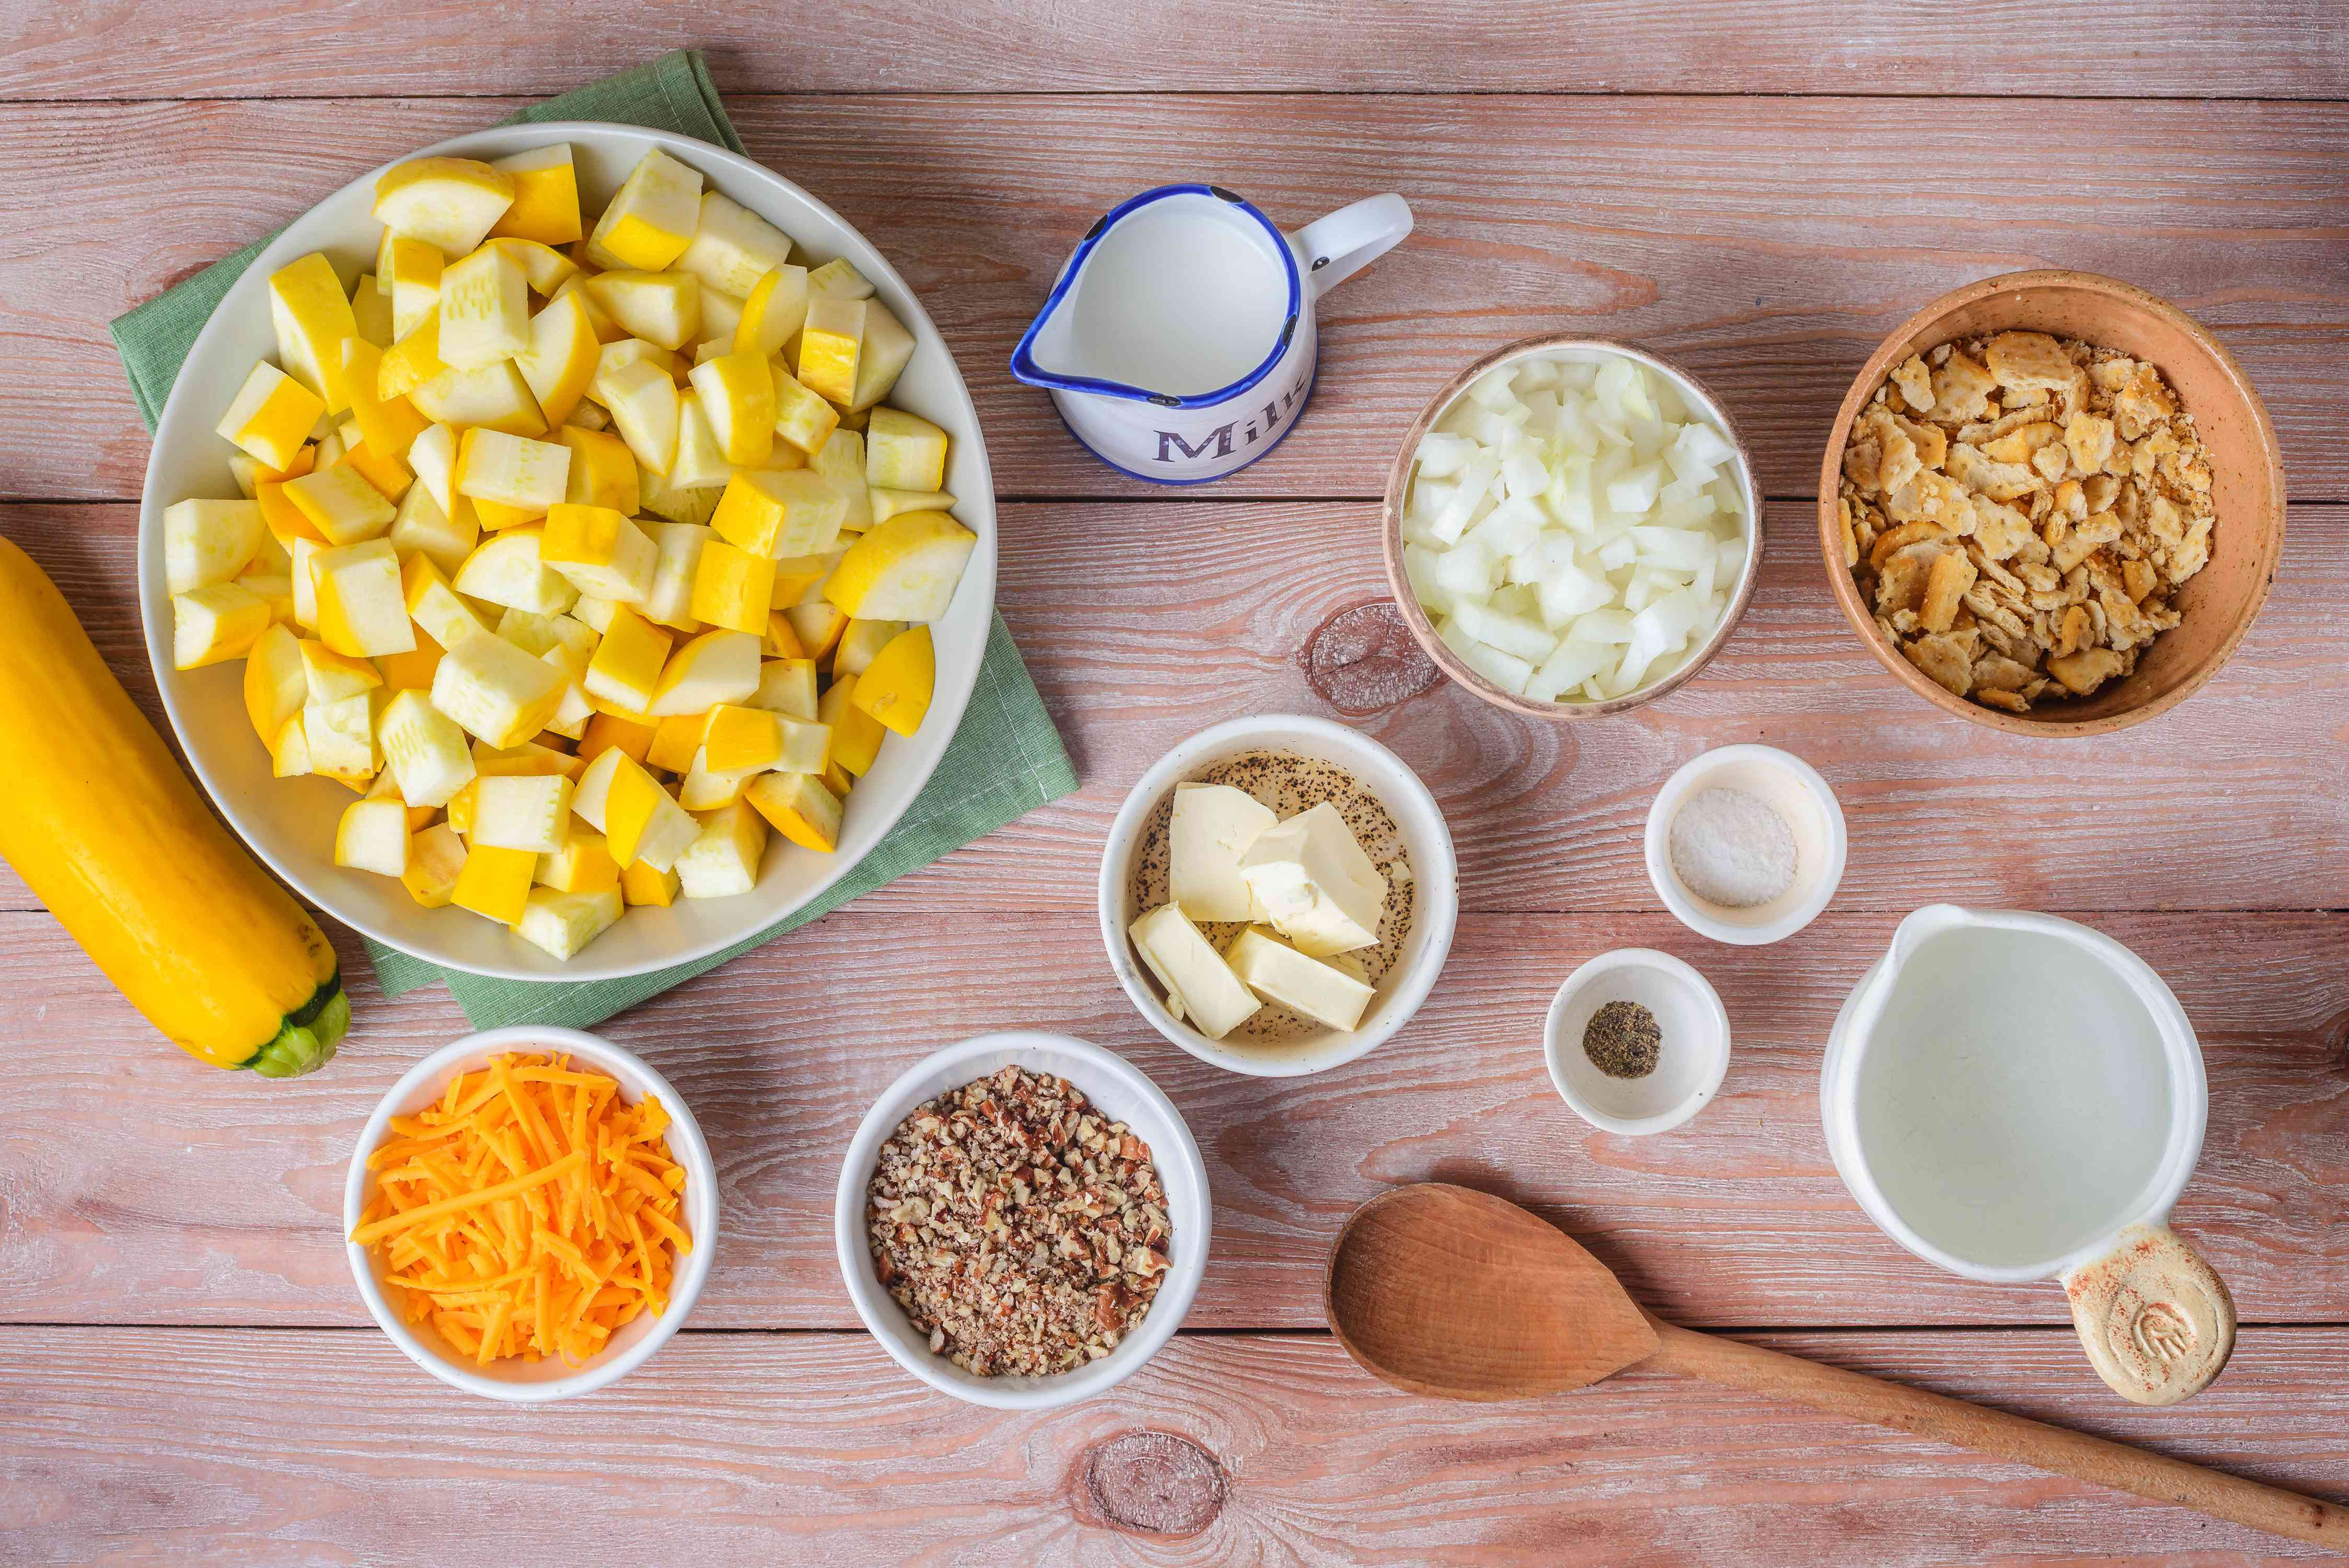 Ingredients for basic squash casserole with cheese